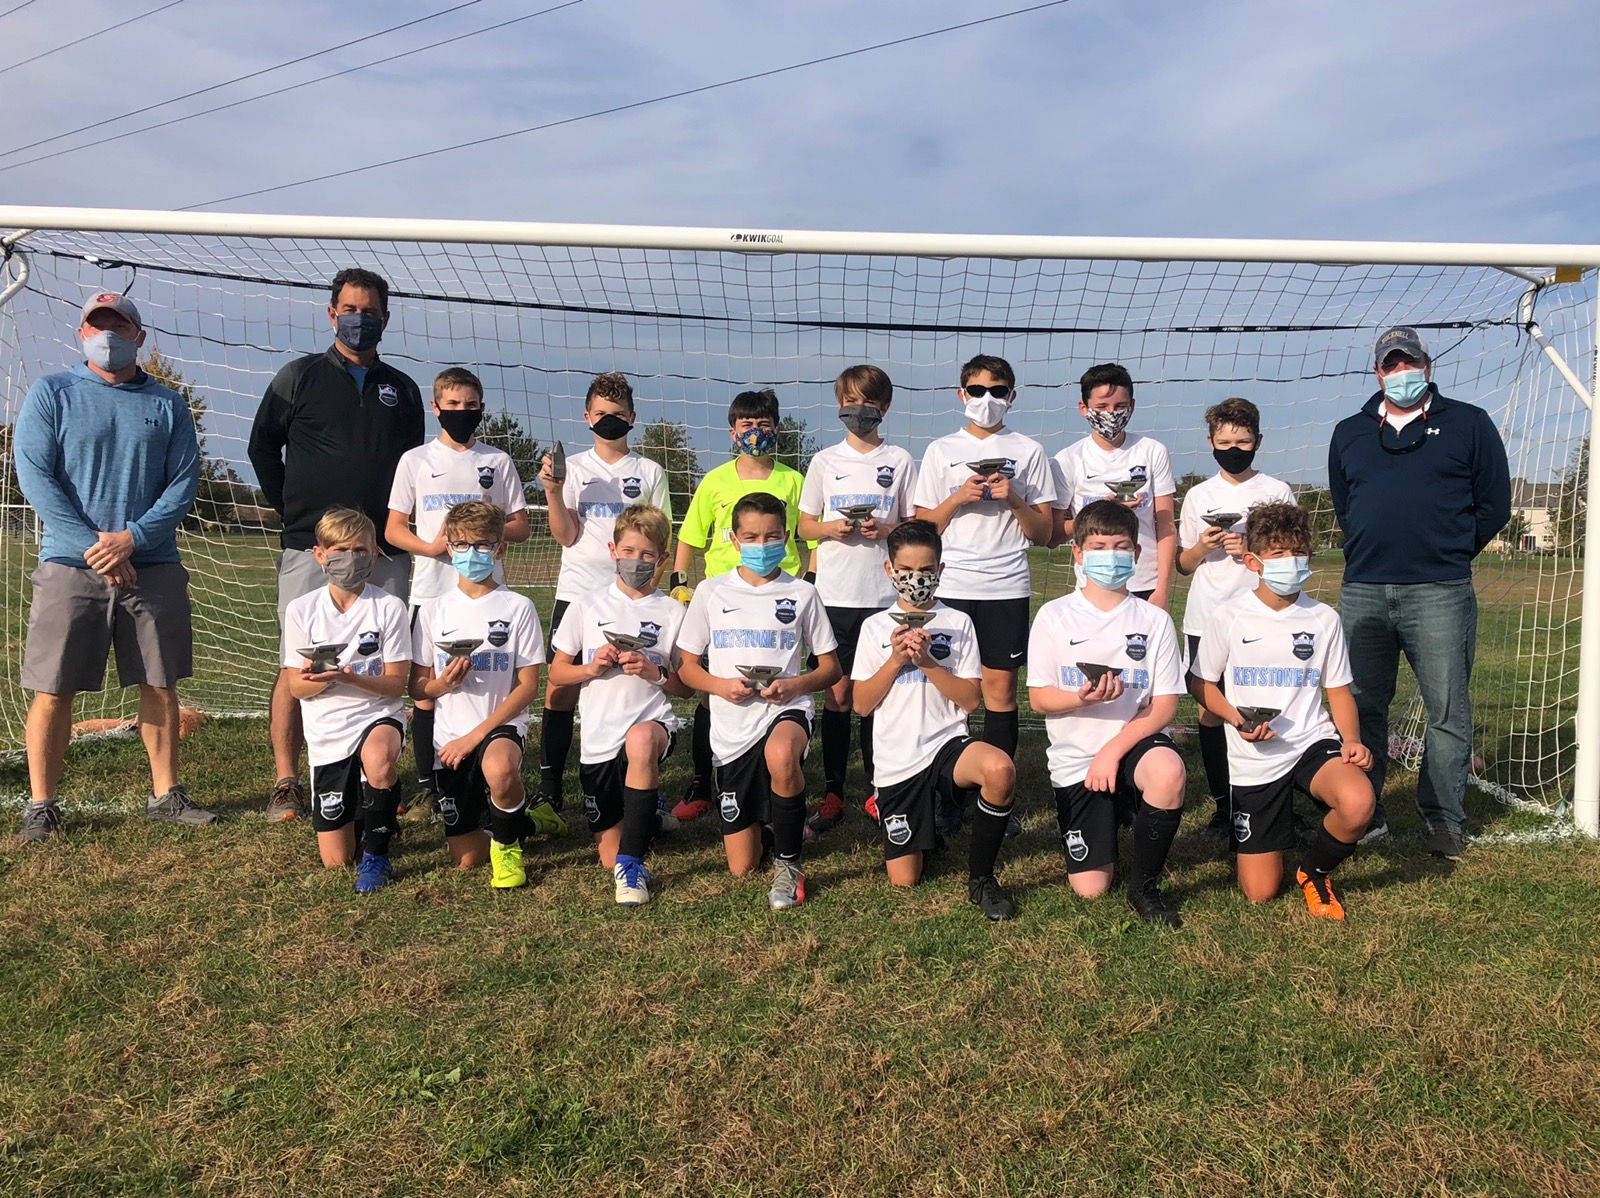 South United 08B Win Iron Valley Soccer Blast